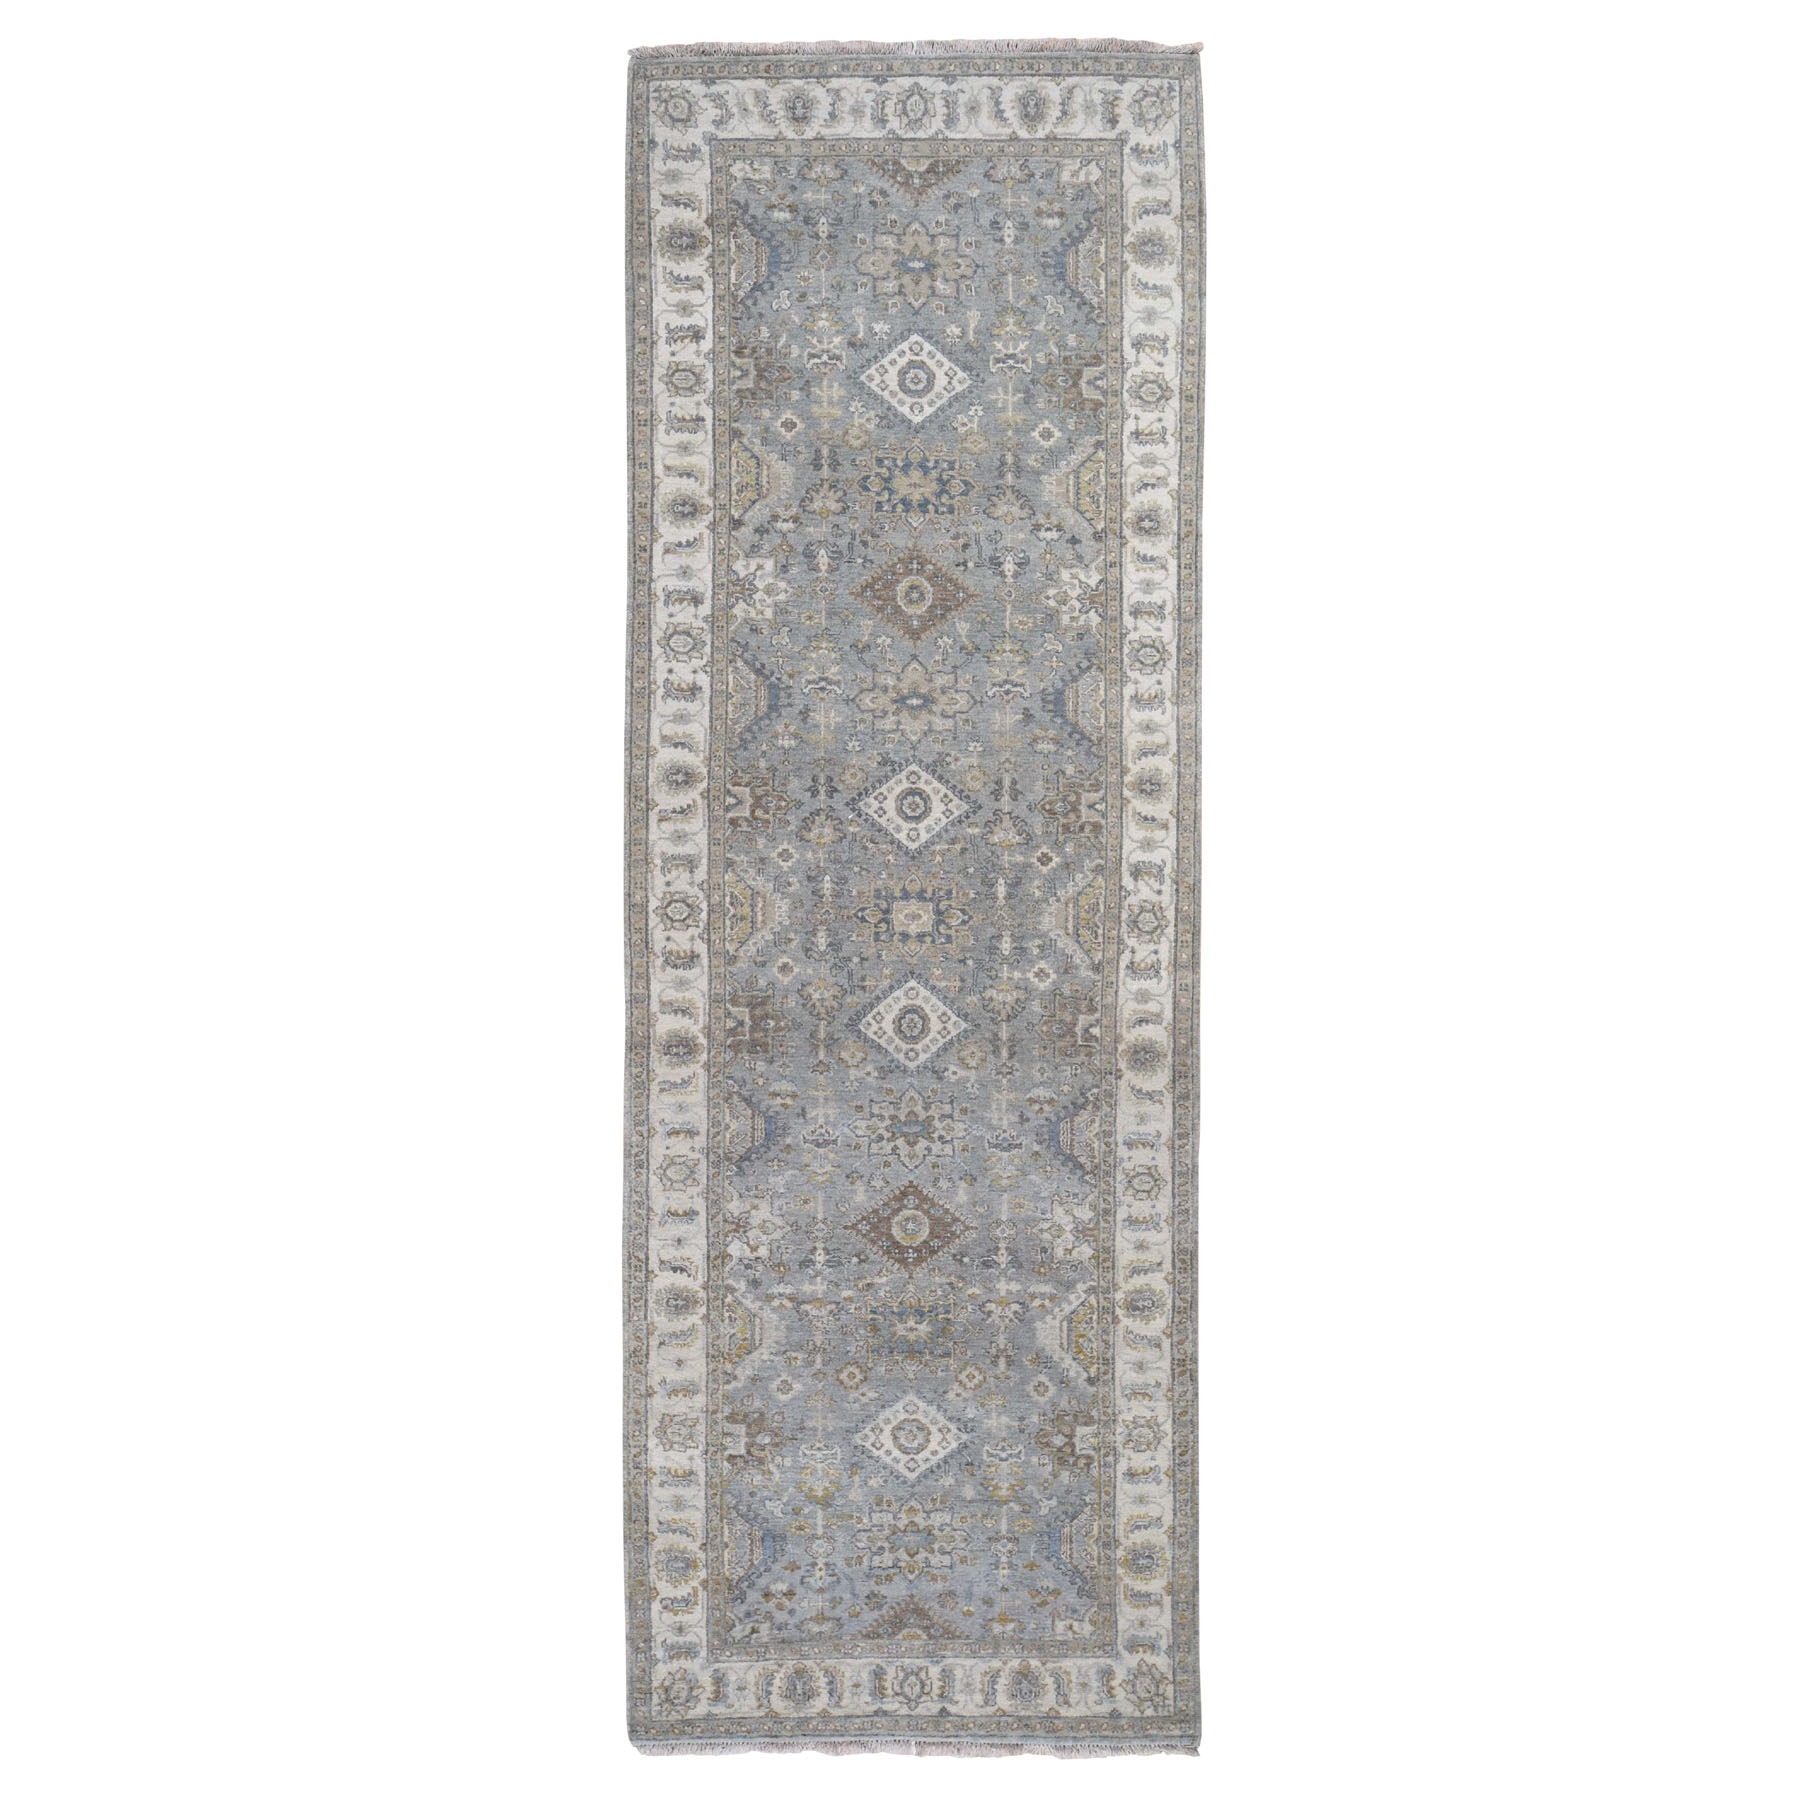 """4'X11'10"""" Gray Karajeh Design Pure Wool Hand Knotted Wide Runner Oriental Rug moad89ee"""